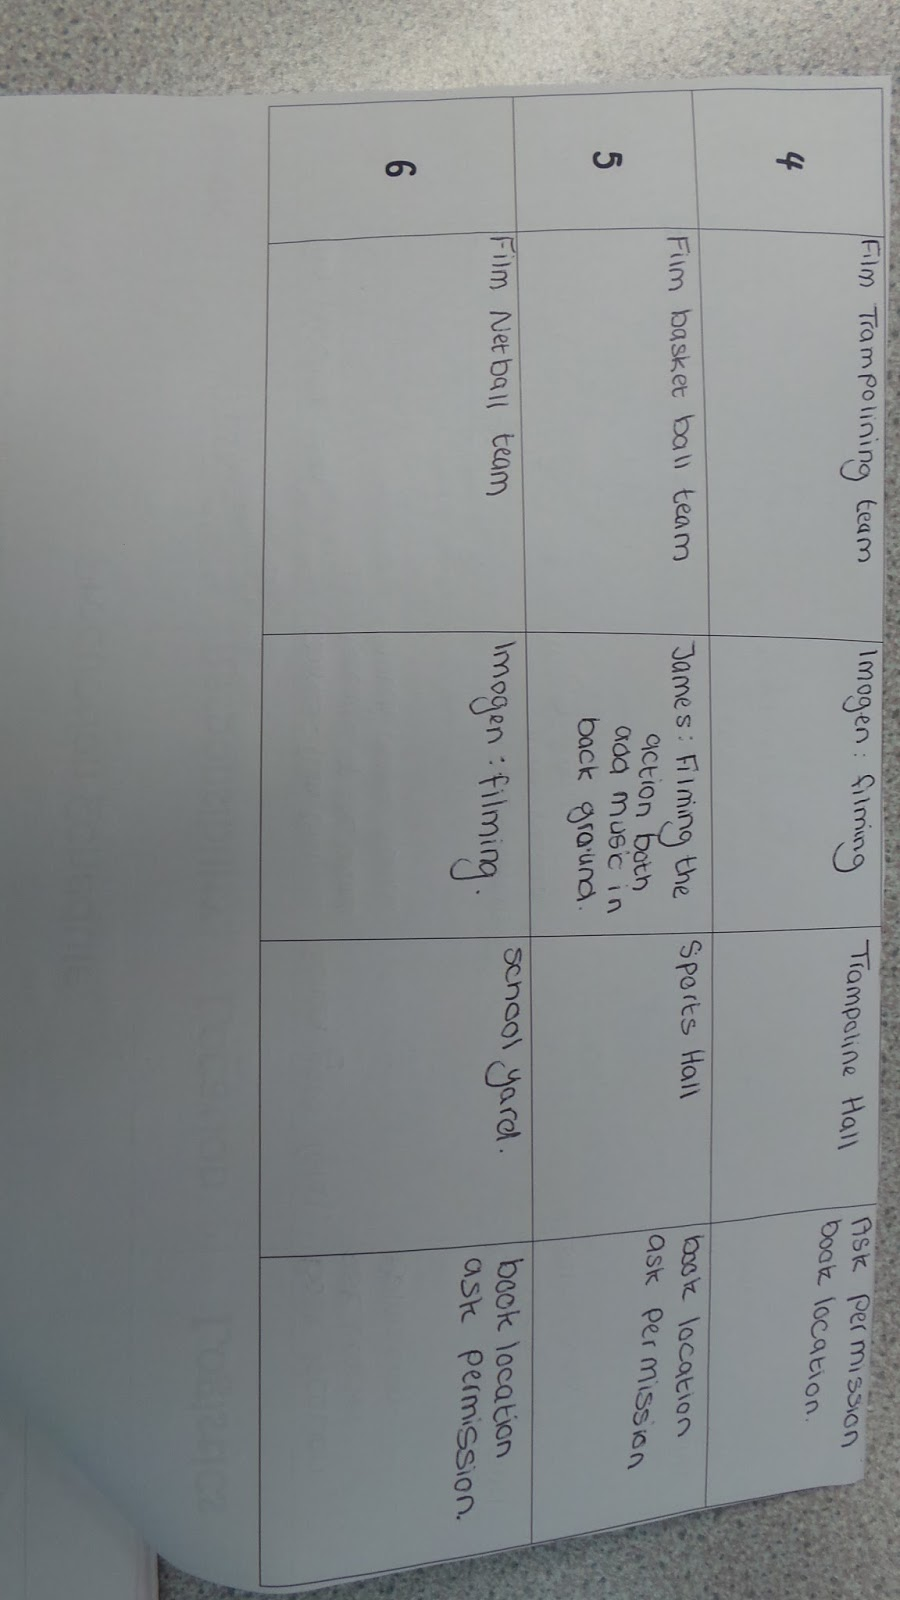 This Sheet Is My Production Schedule It Shows That The Responsibilities We Have To Do And Tasks Work On